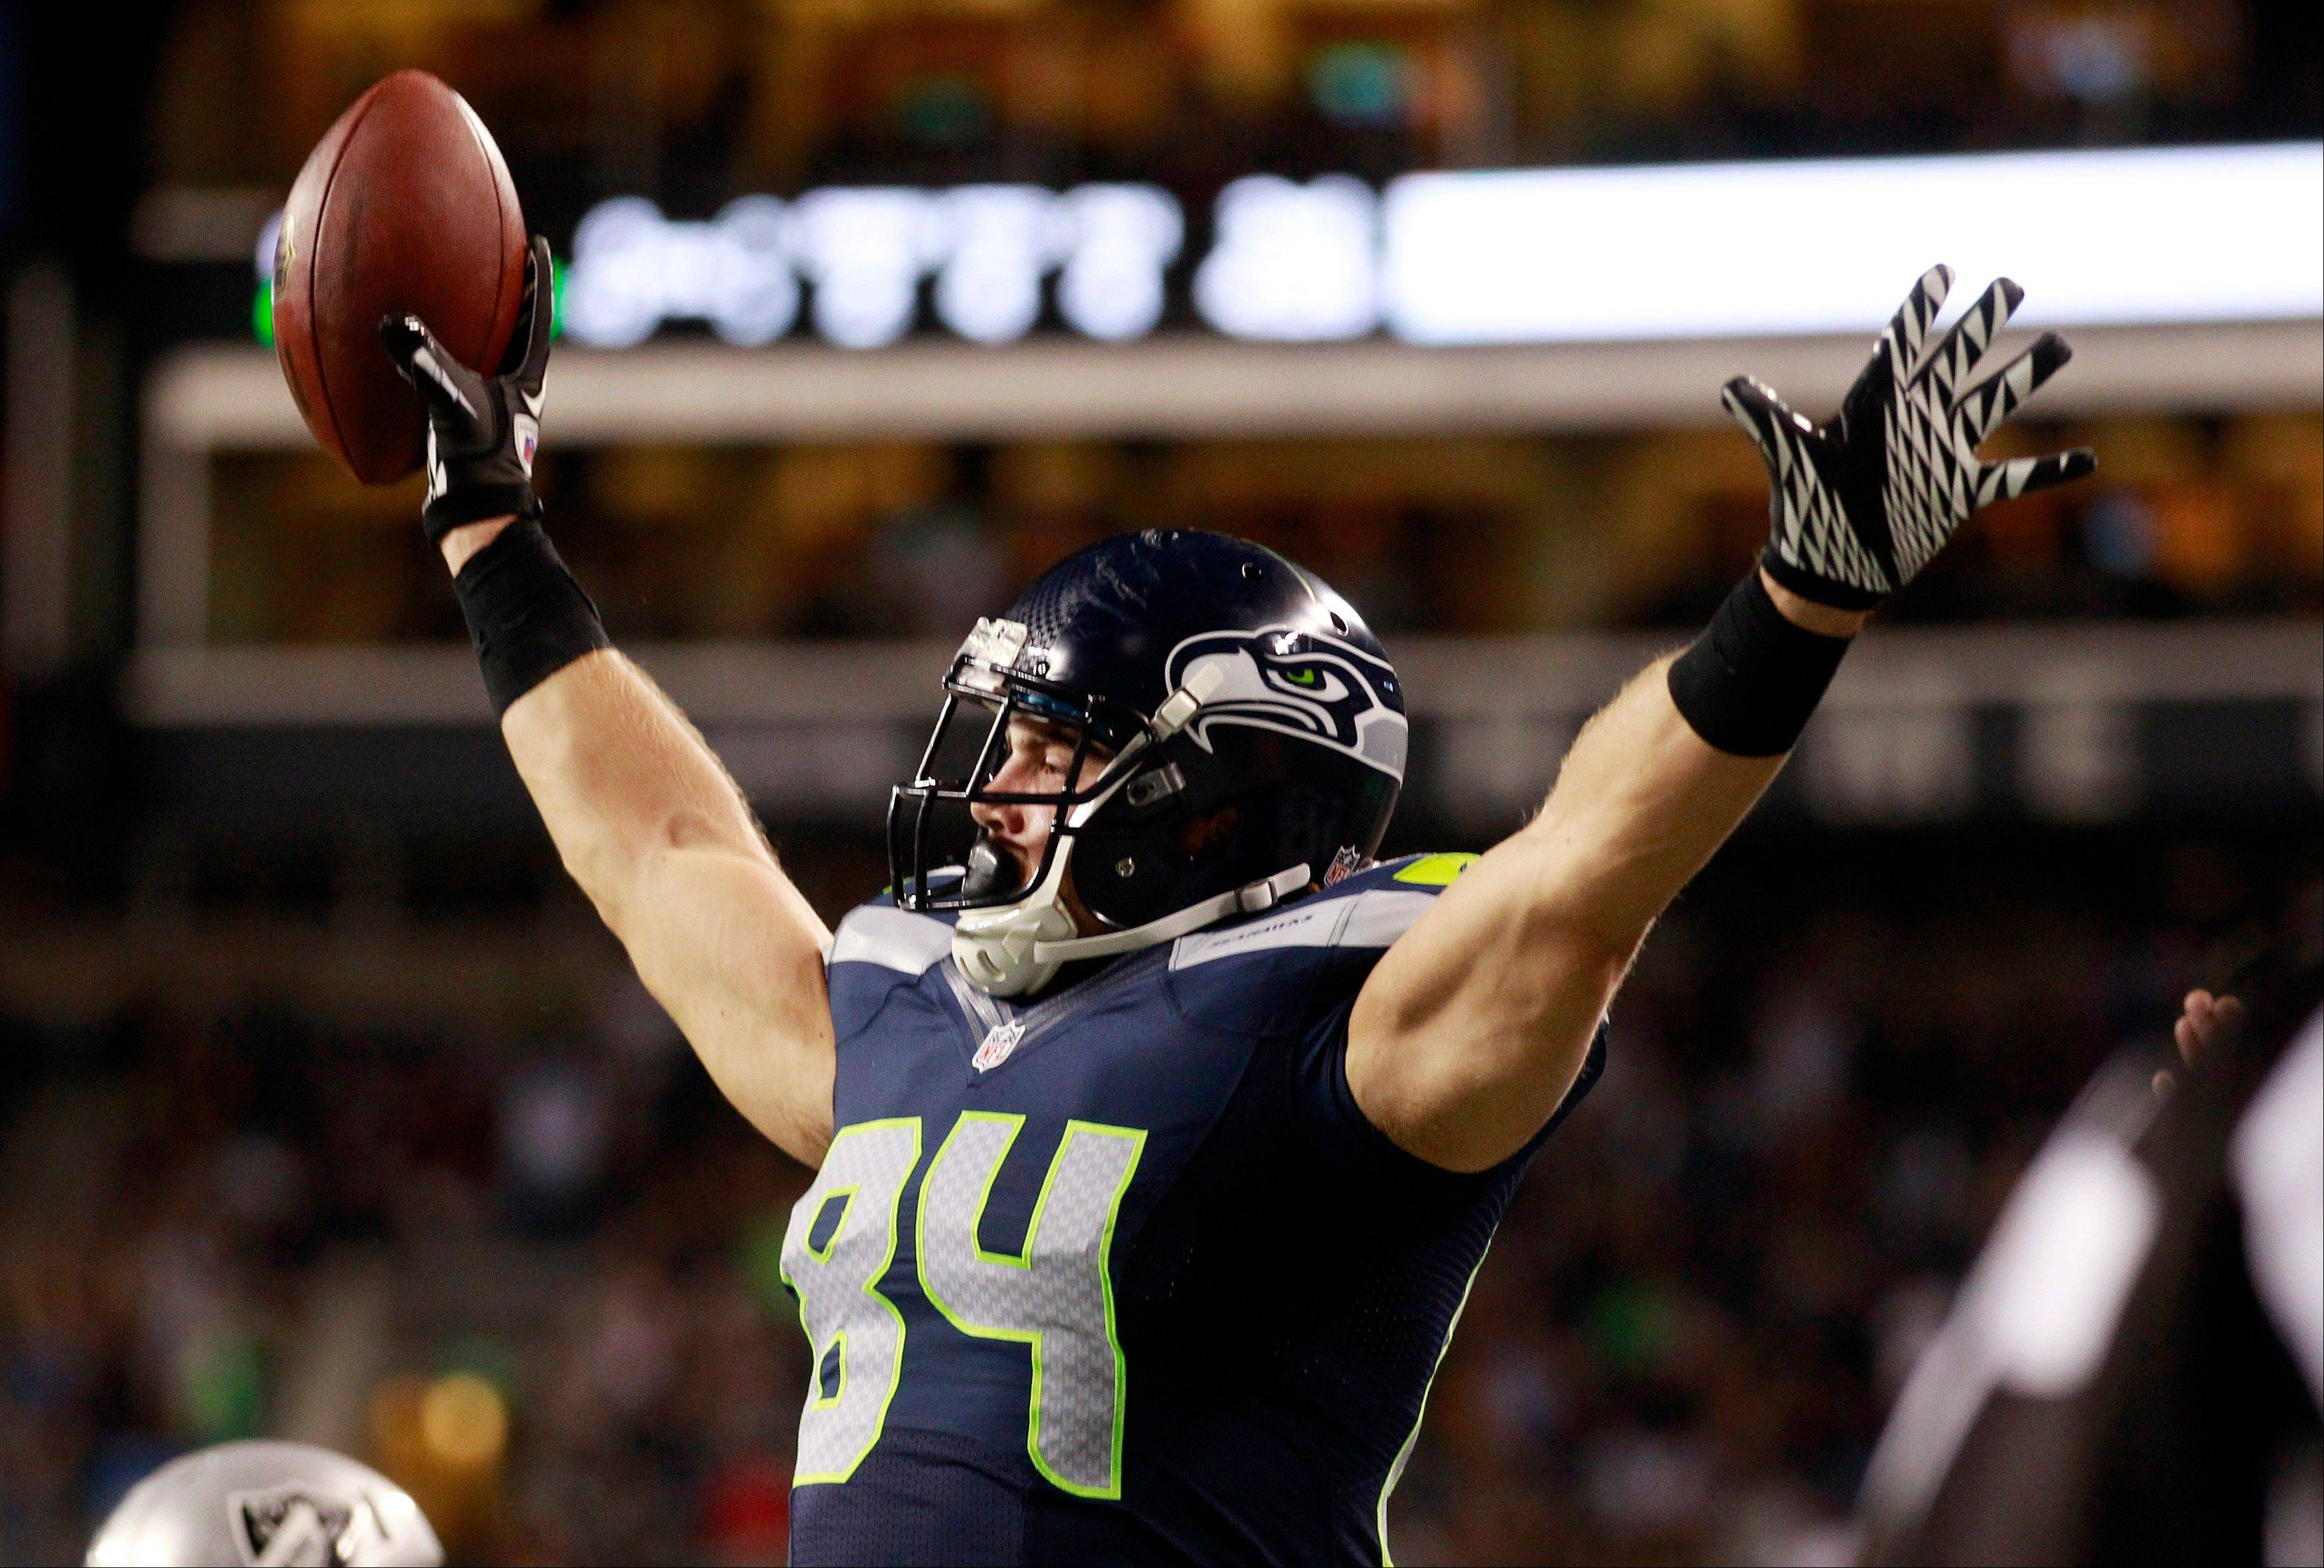 The Seahawks� Cooper Helfet celebrates after scoring a touchdown against the Oakland Raiders in the second half of a preseason game Thursday in Seattle.